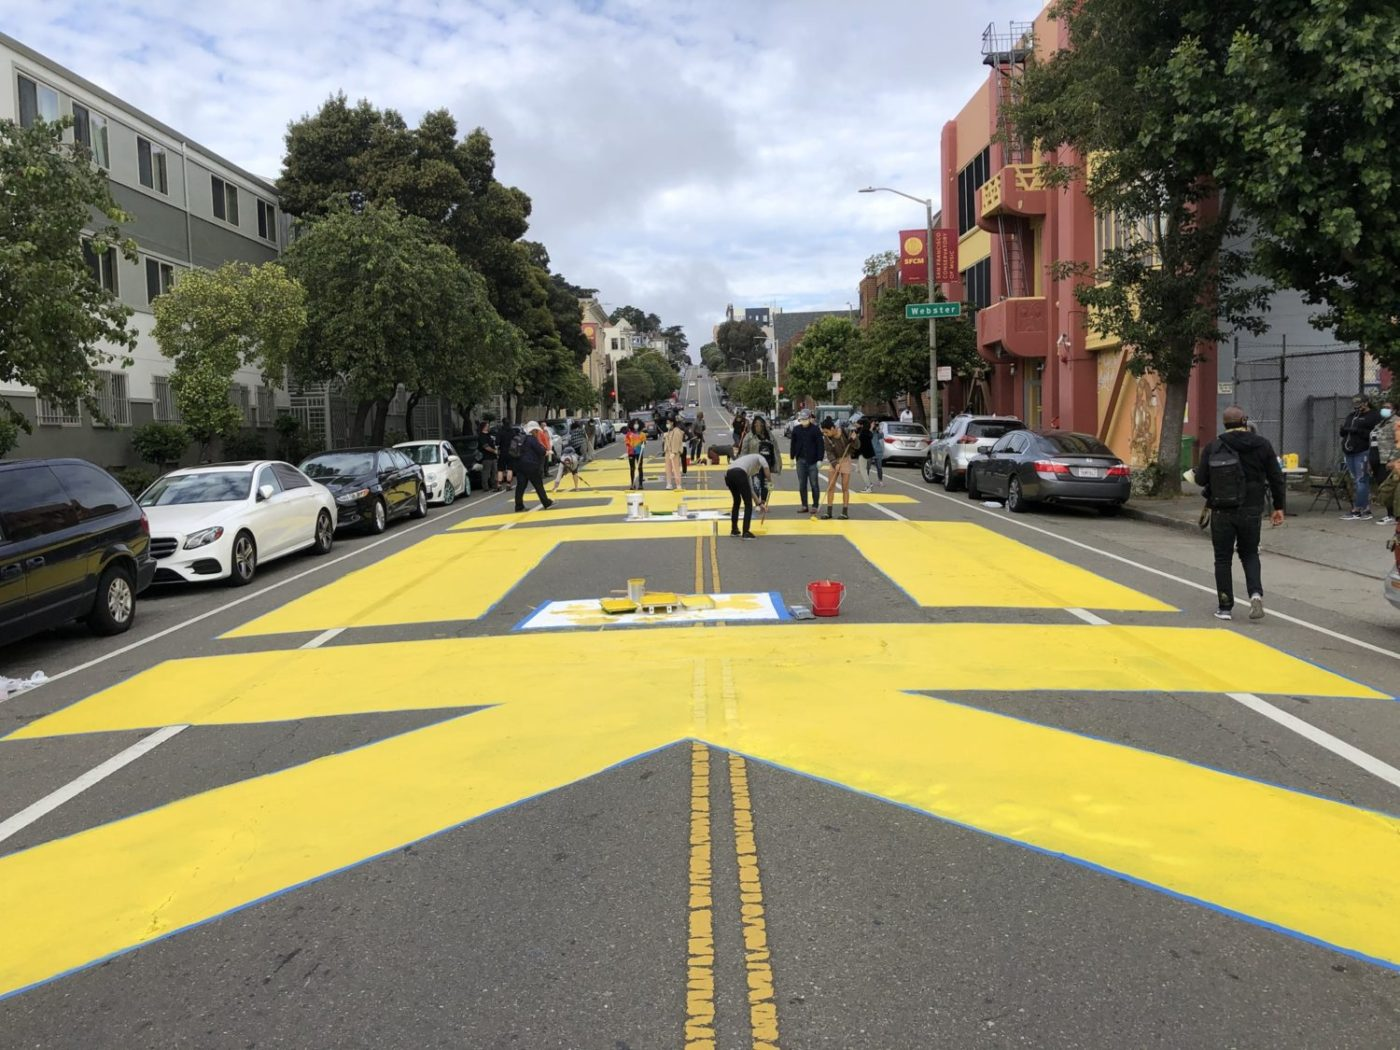 Melonie-Melorra-Green-Project-Level-lead-'Black-Lives-Matter'-700-block-Fulton-street-painting-061220-1-by-Meaghan-Mitchell-Hoodline-1400x1050, 100+ volunteers paint 'Black Lives Matter' in center of San Francisco street, Local News & Views